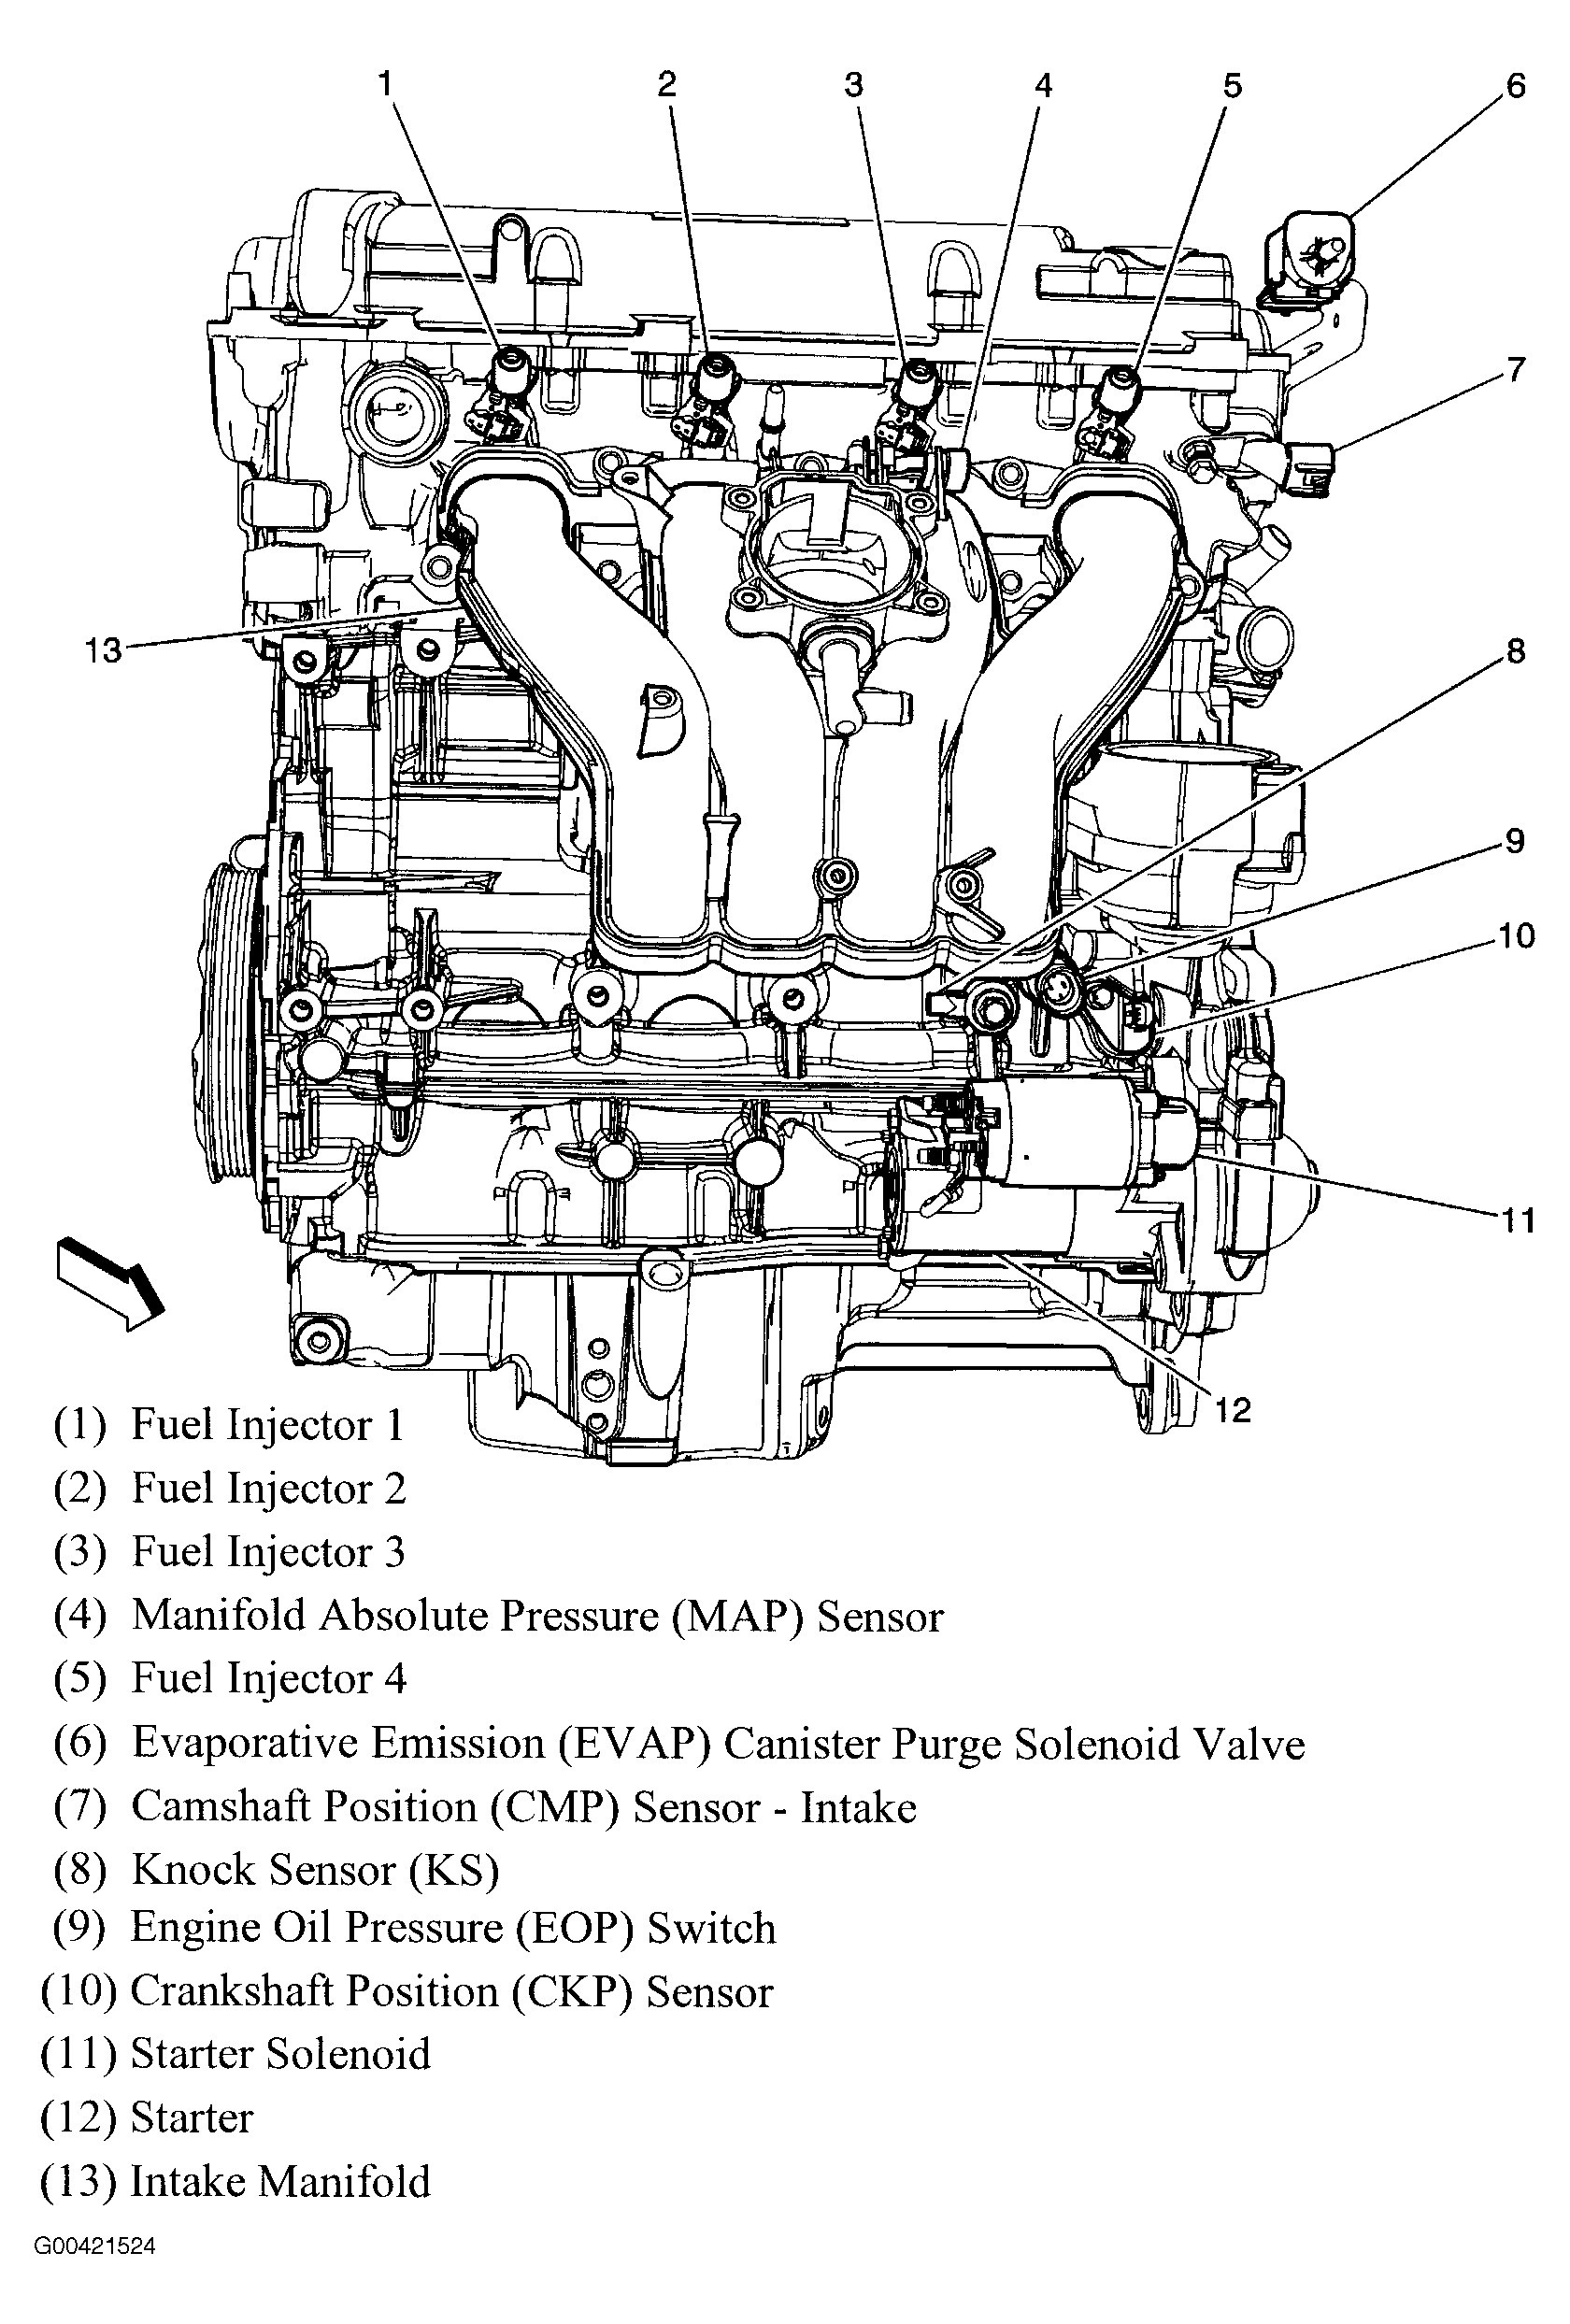 hight resolution of 03 grand am 3 4 liter engine diagram wiring diagram paper 2002 pontiac grand am 3 4l engine diagram